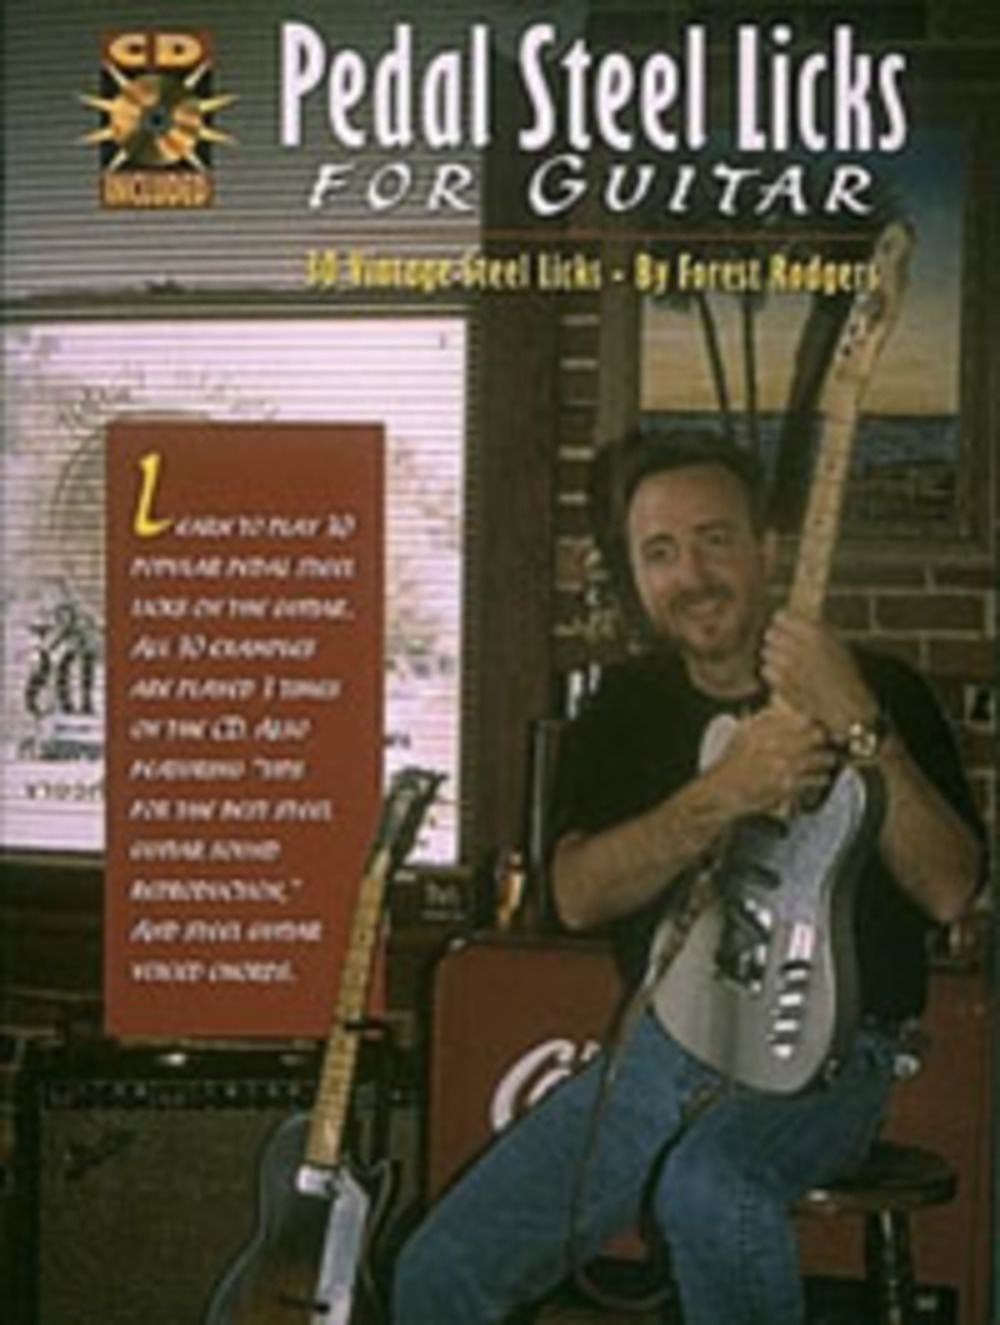 Pedal Steel Licks for Guitar with CD